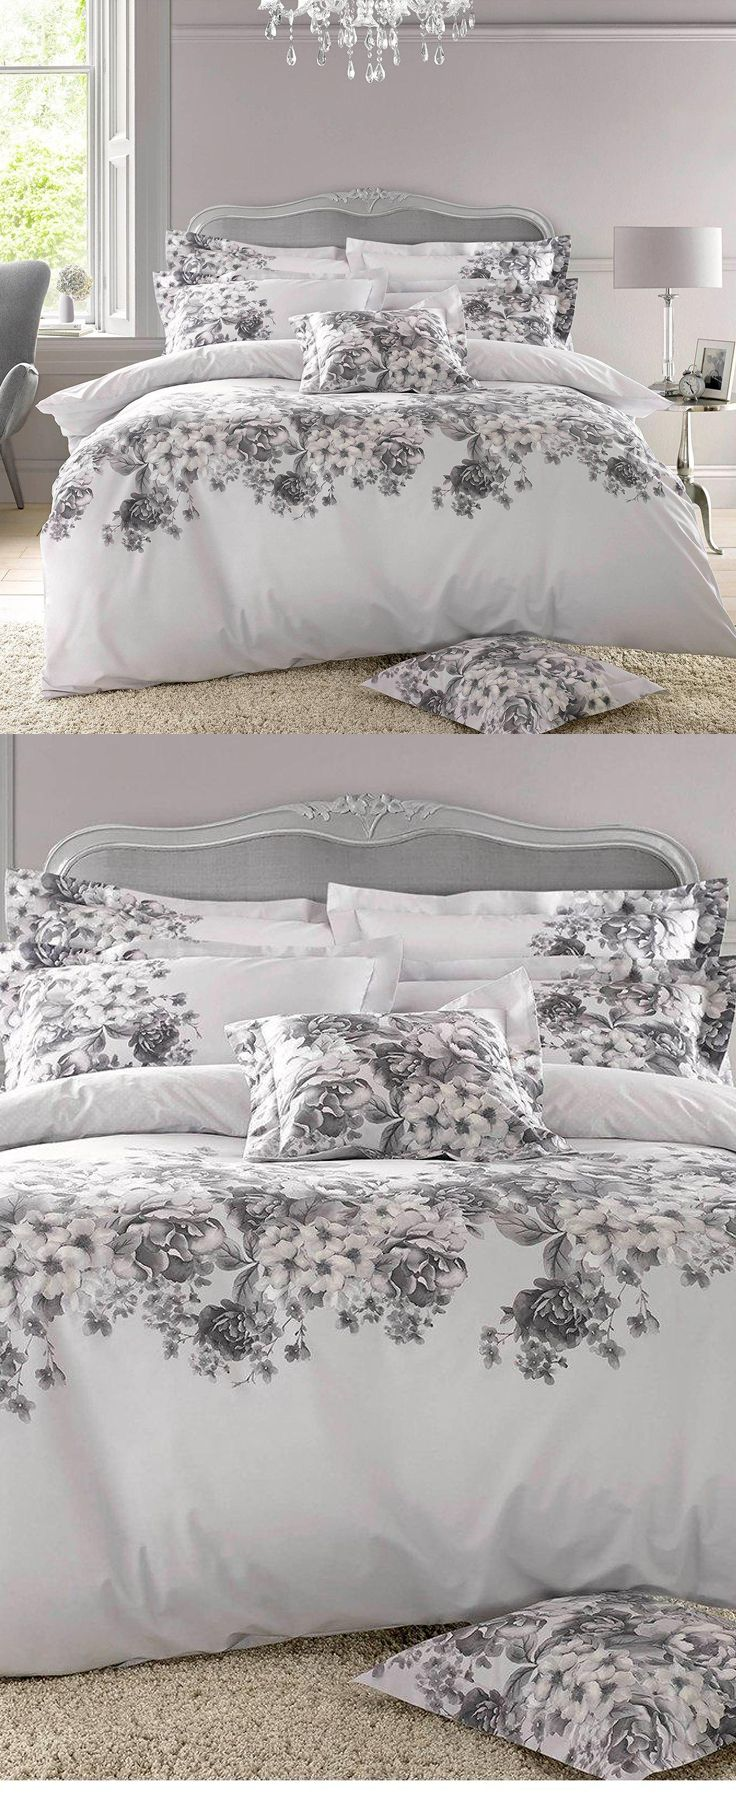 Holly Willoughby Bedding Collection Duvet Set. Country House Bedroom Decor.  Shabby Chic Bedrooms. Gifts For Her. Bedroom Furnishings. Home Decor. #u2026